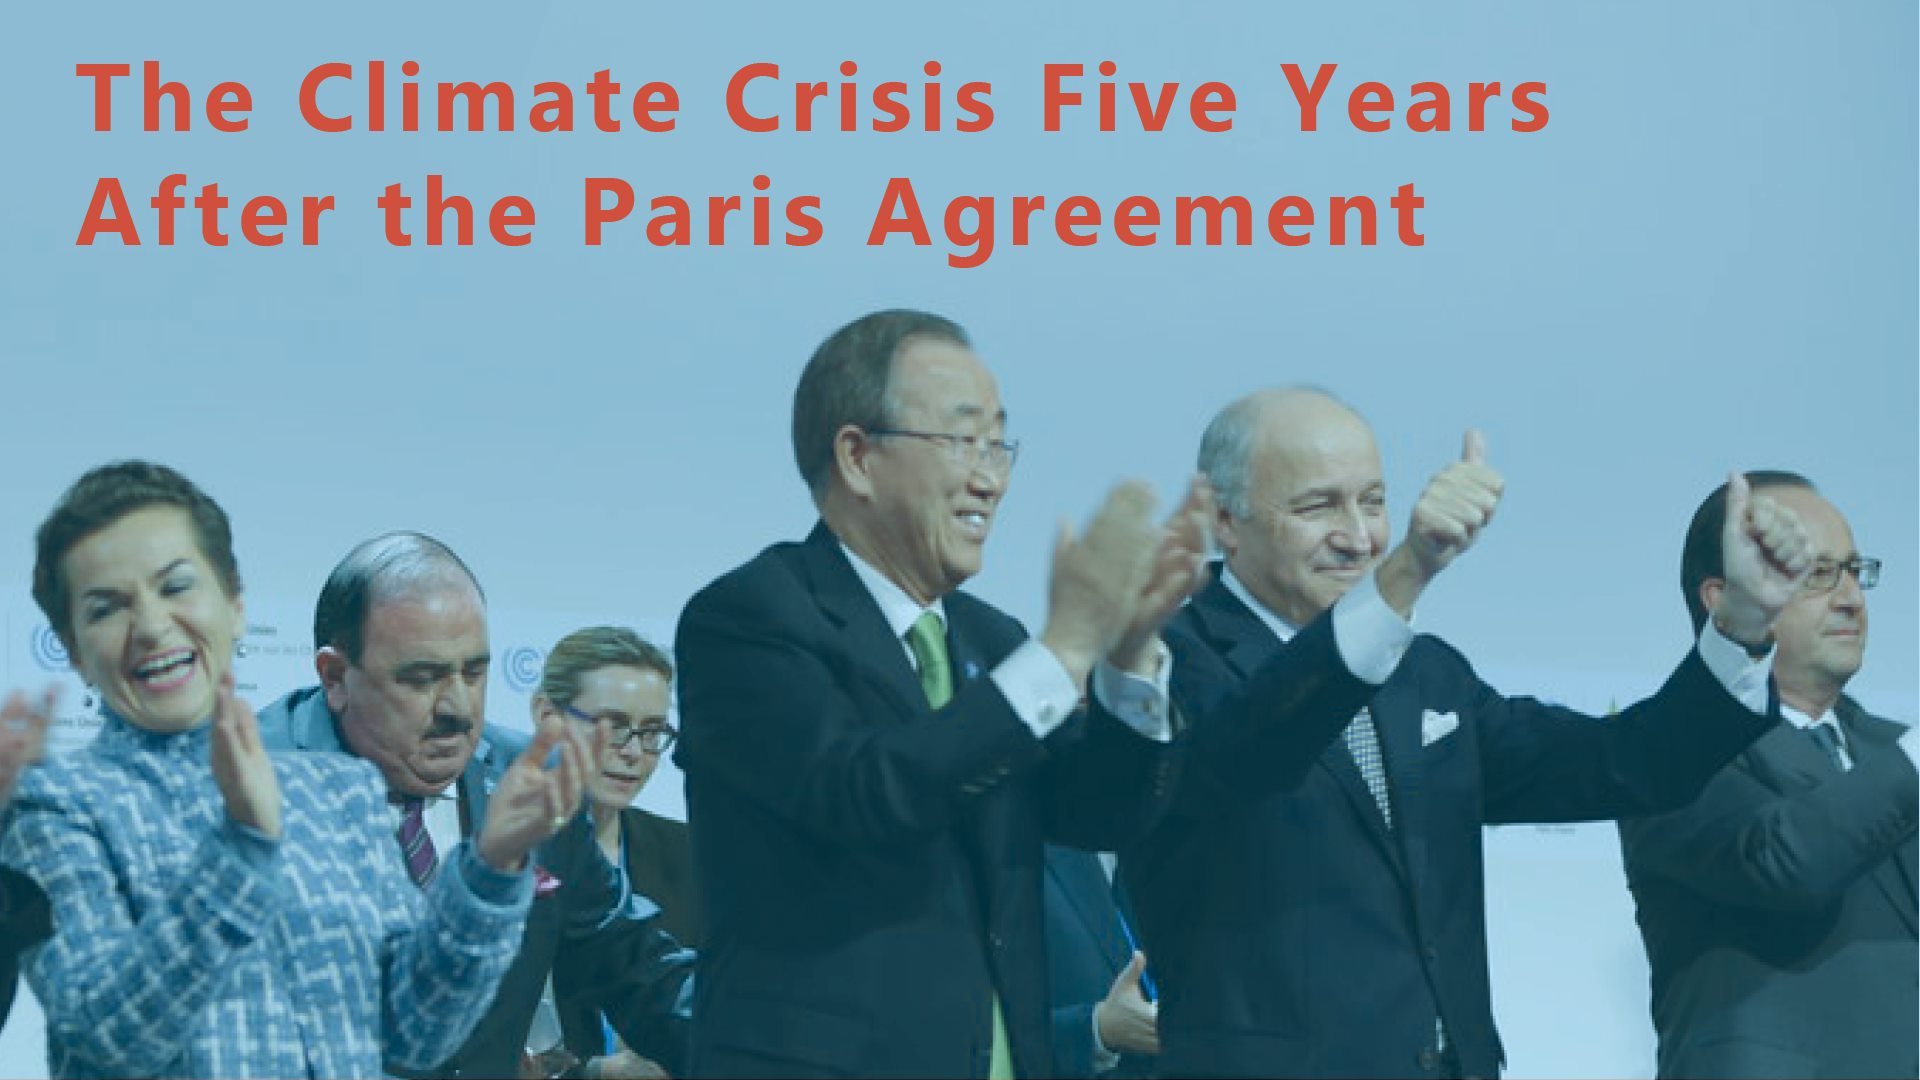 The climate crisis five years after the Paris Agreement - Mikael Karlsson